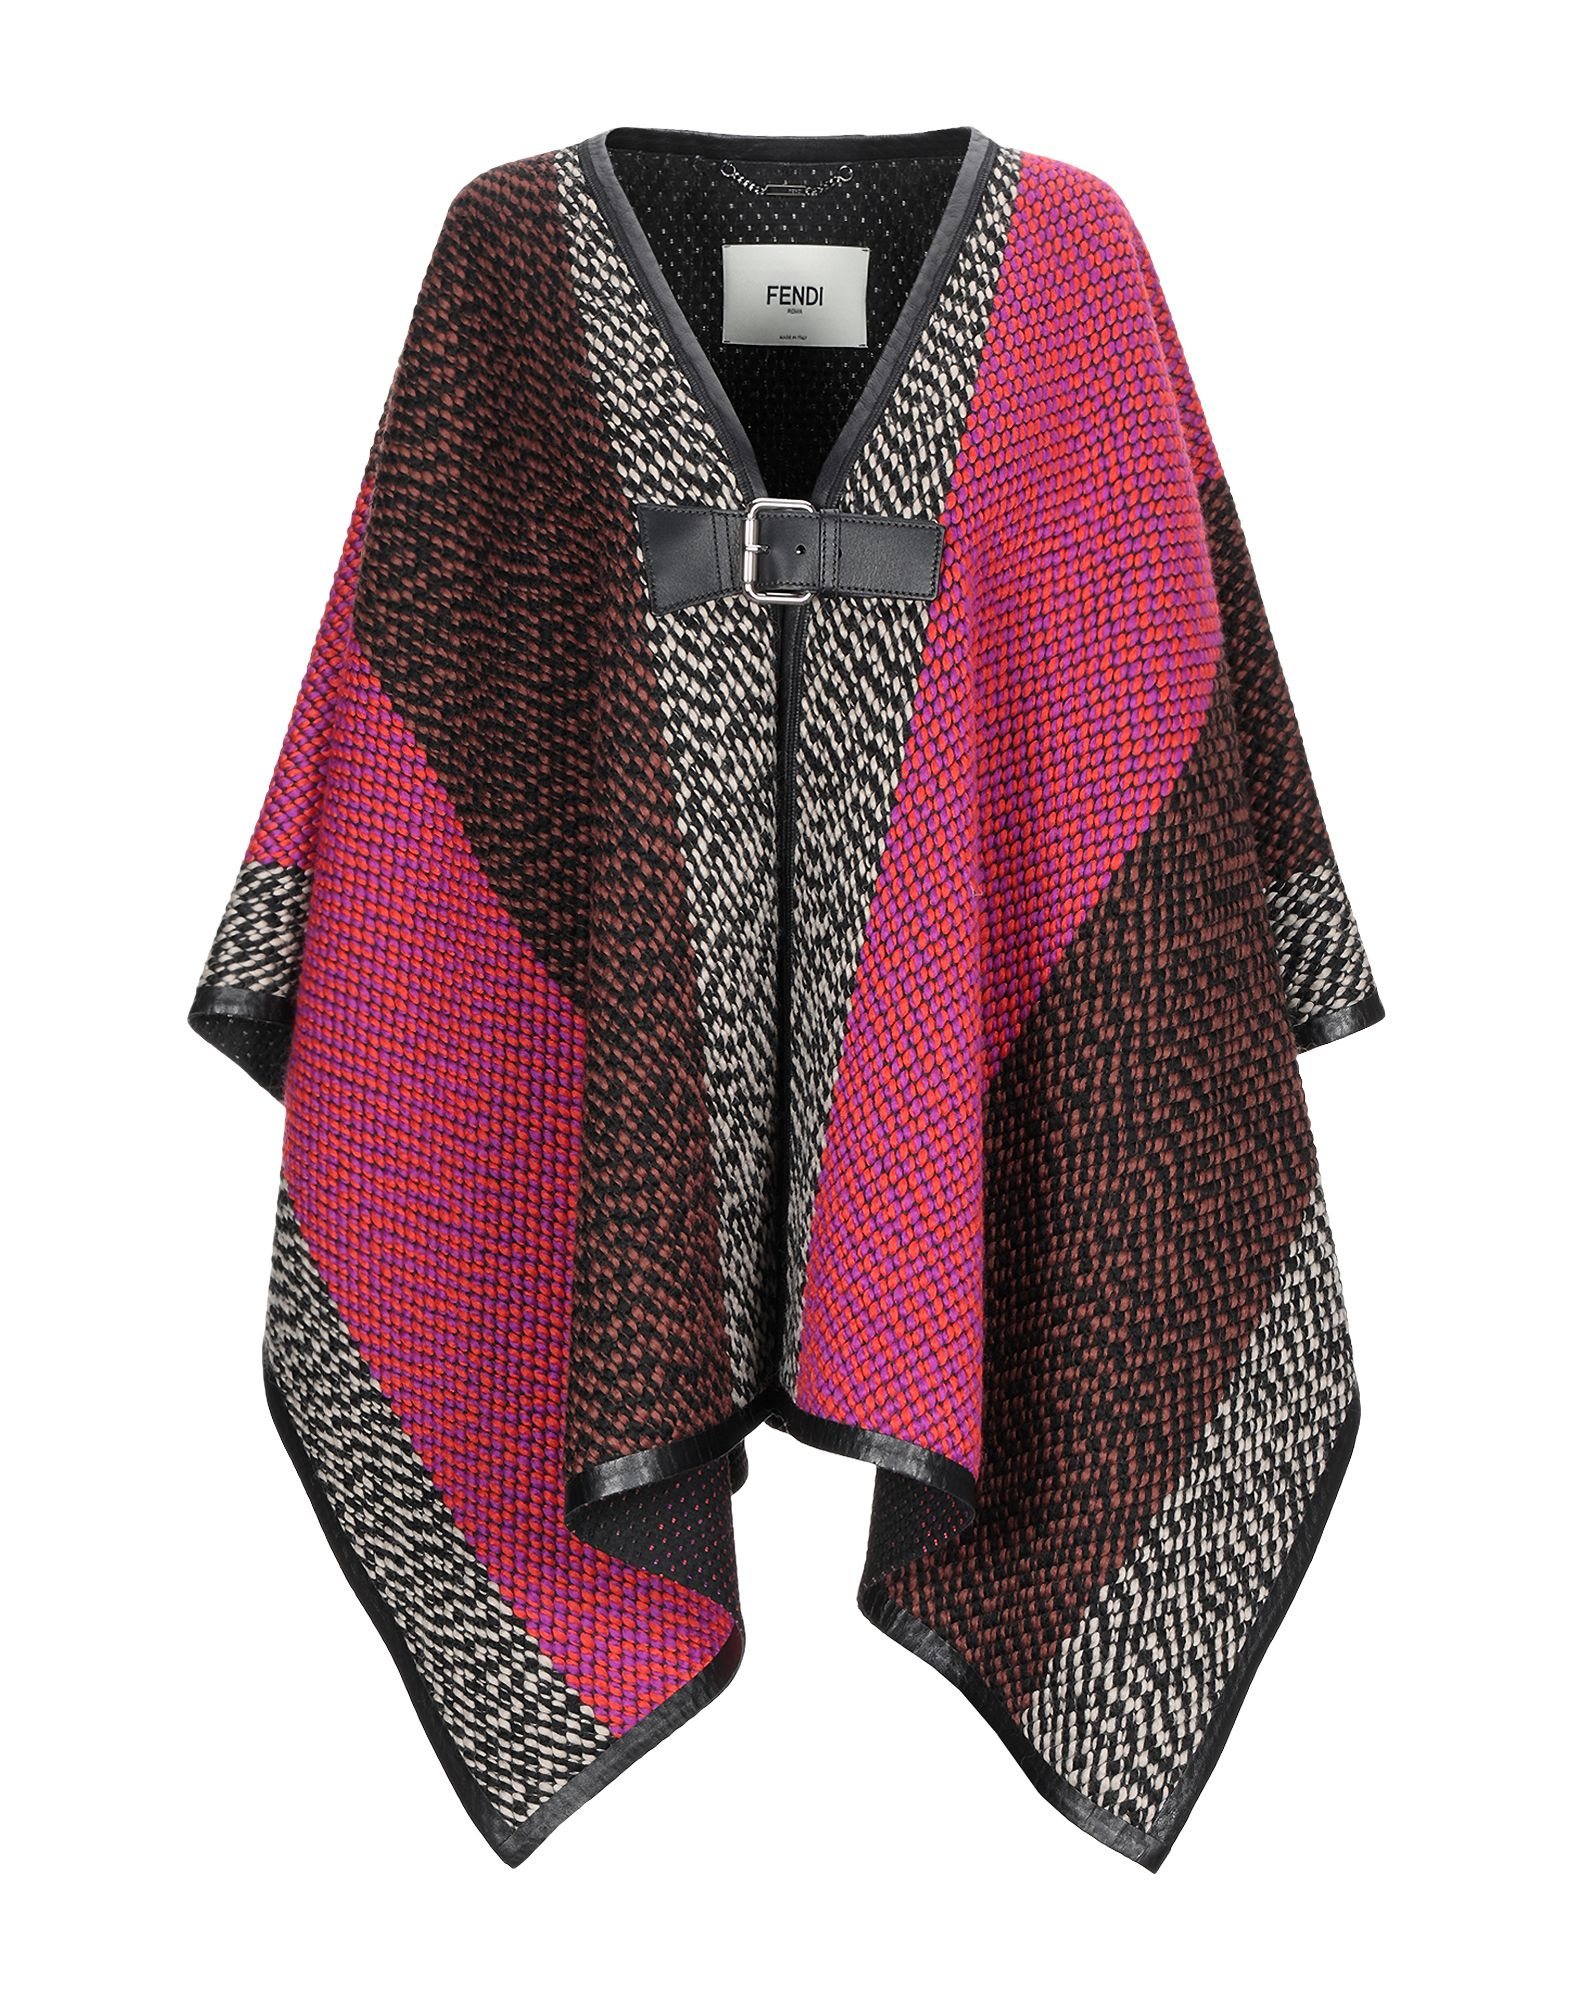 259f9d8878be Buy wraps, capes & ponchos scarves for women - Best women's wraps, capes &  ponchos scarves shop - Cools.com